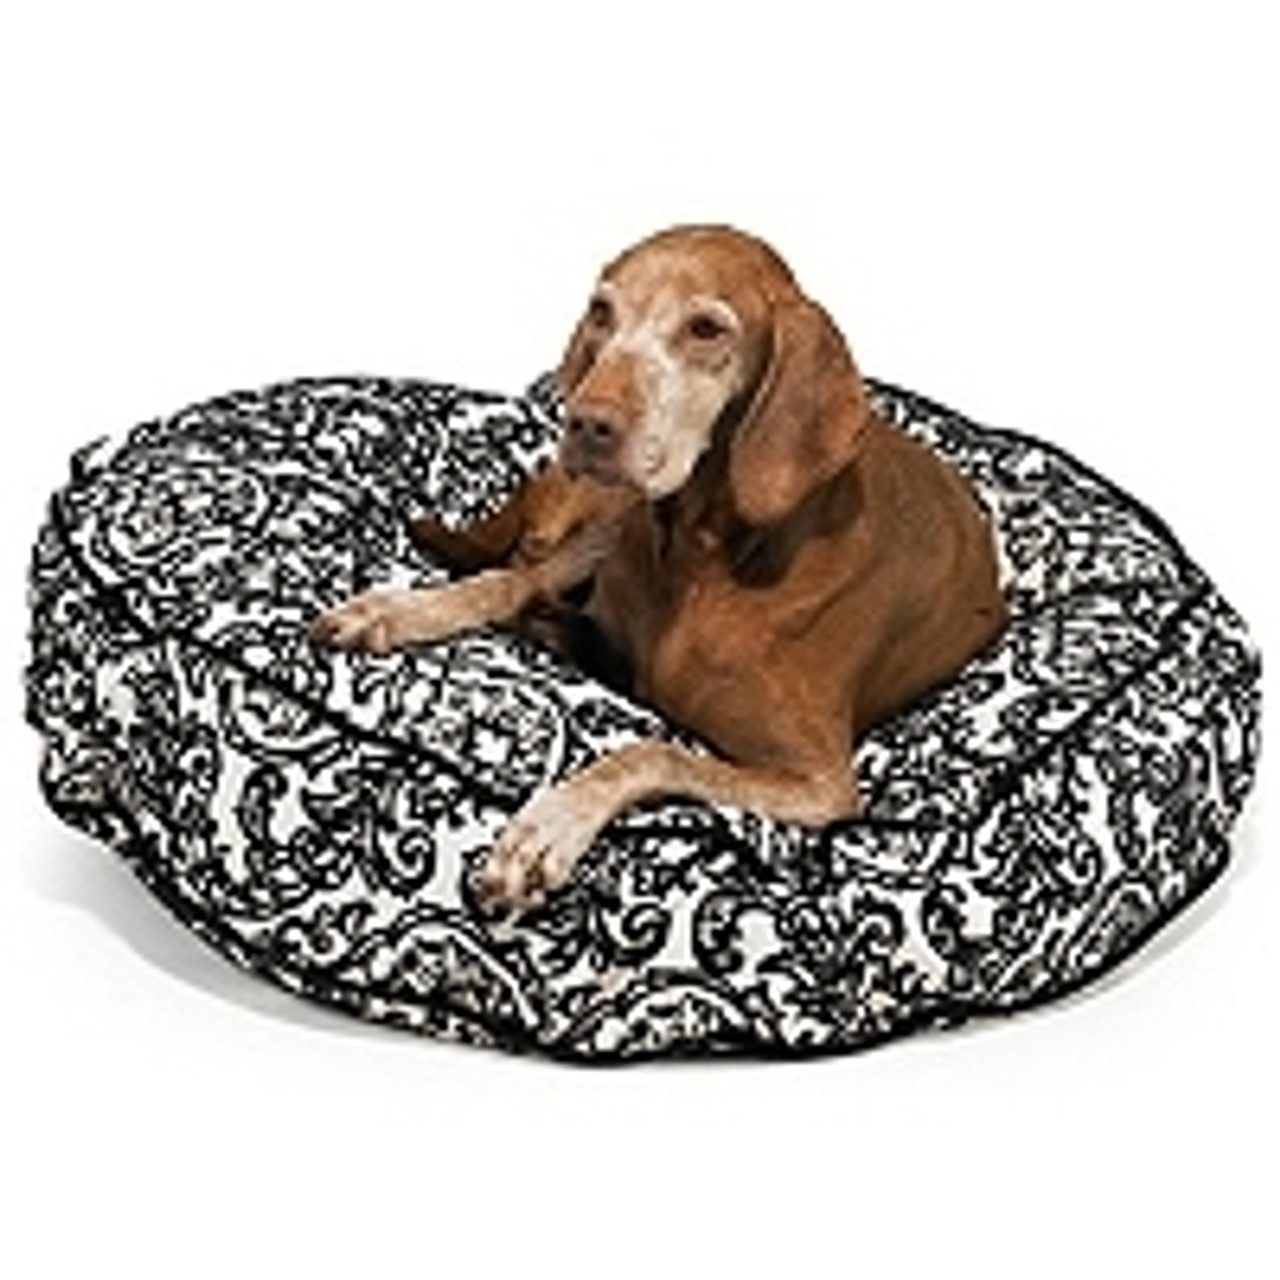 Bowsers - Round Bed